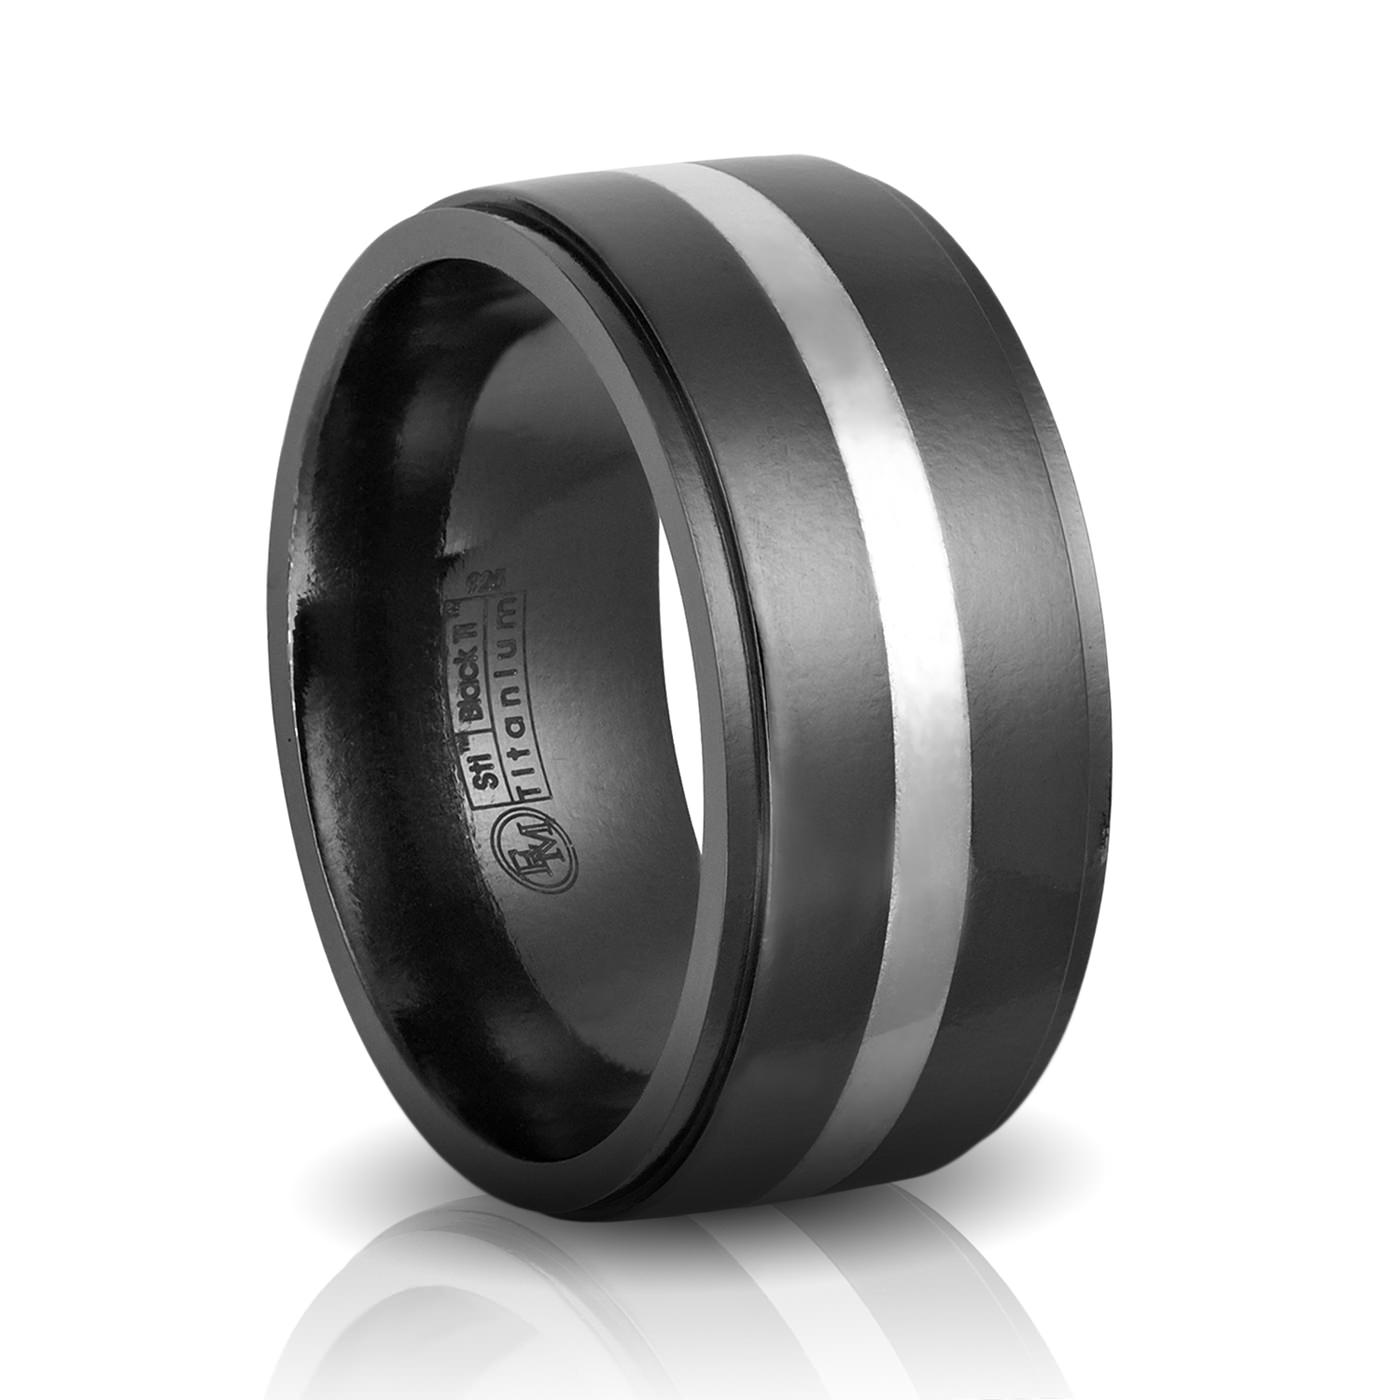 ring beveled black titanium edges men com wedding s carbon band mens inlay rings dp amazon fiber and